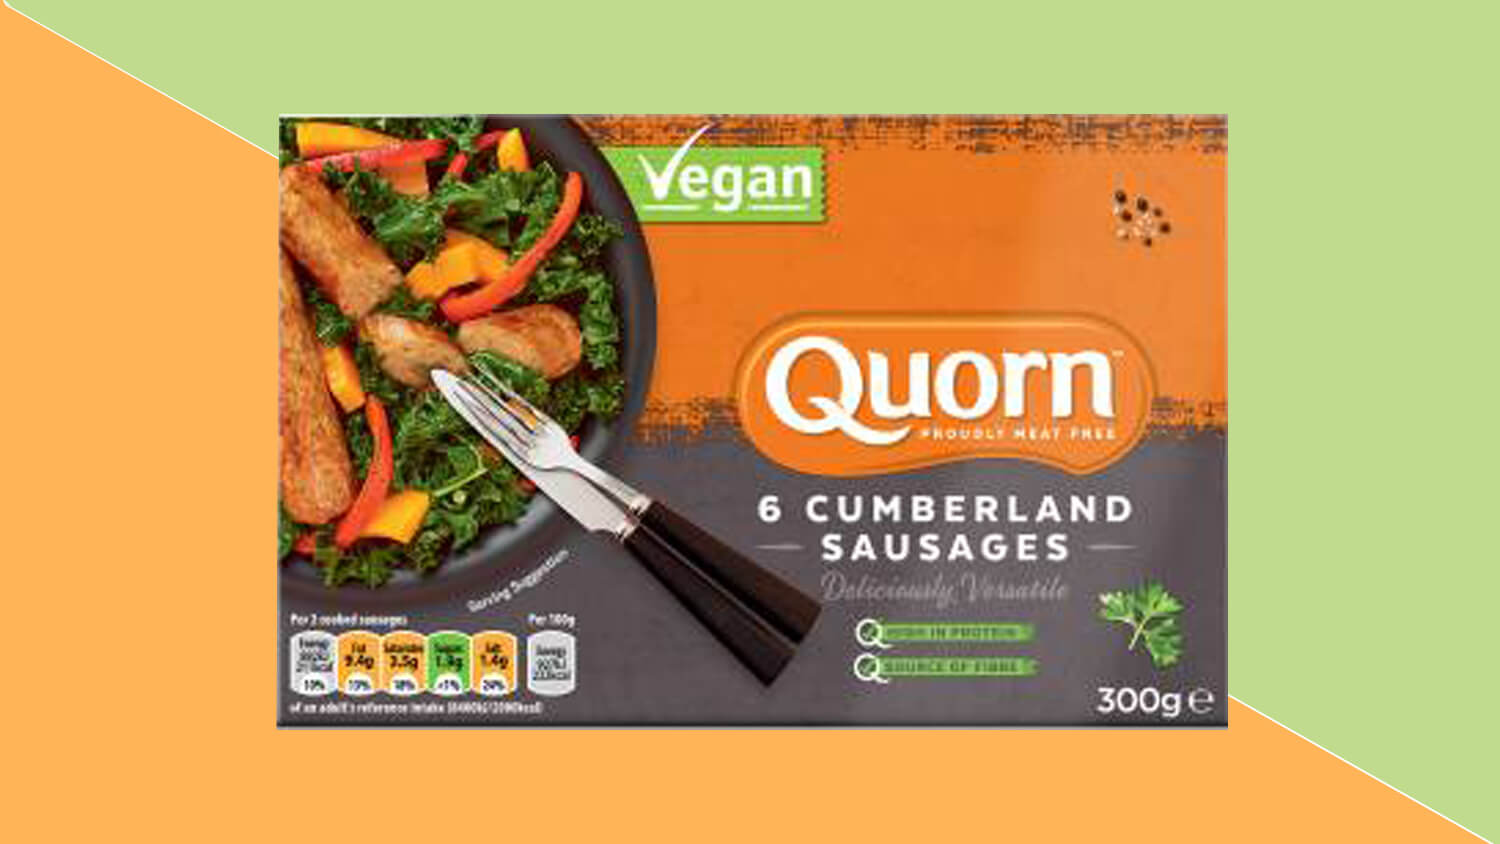 Asda Customers Vote Quorn's Vegan Cumberland Sausages As Most Innovative Product